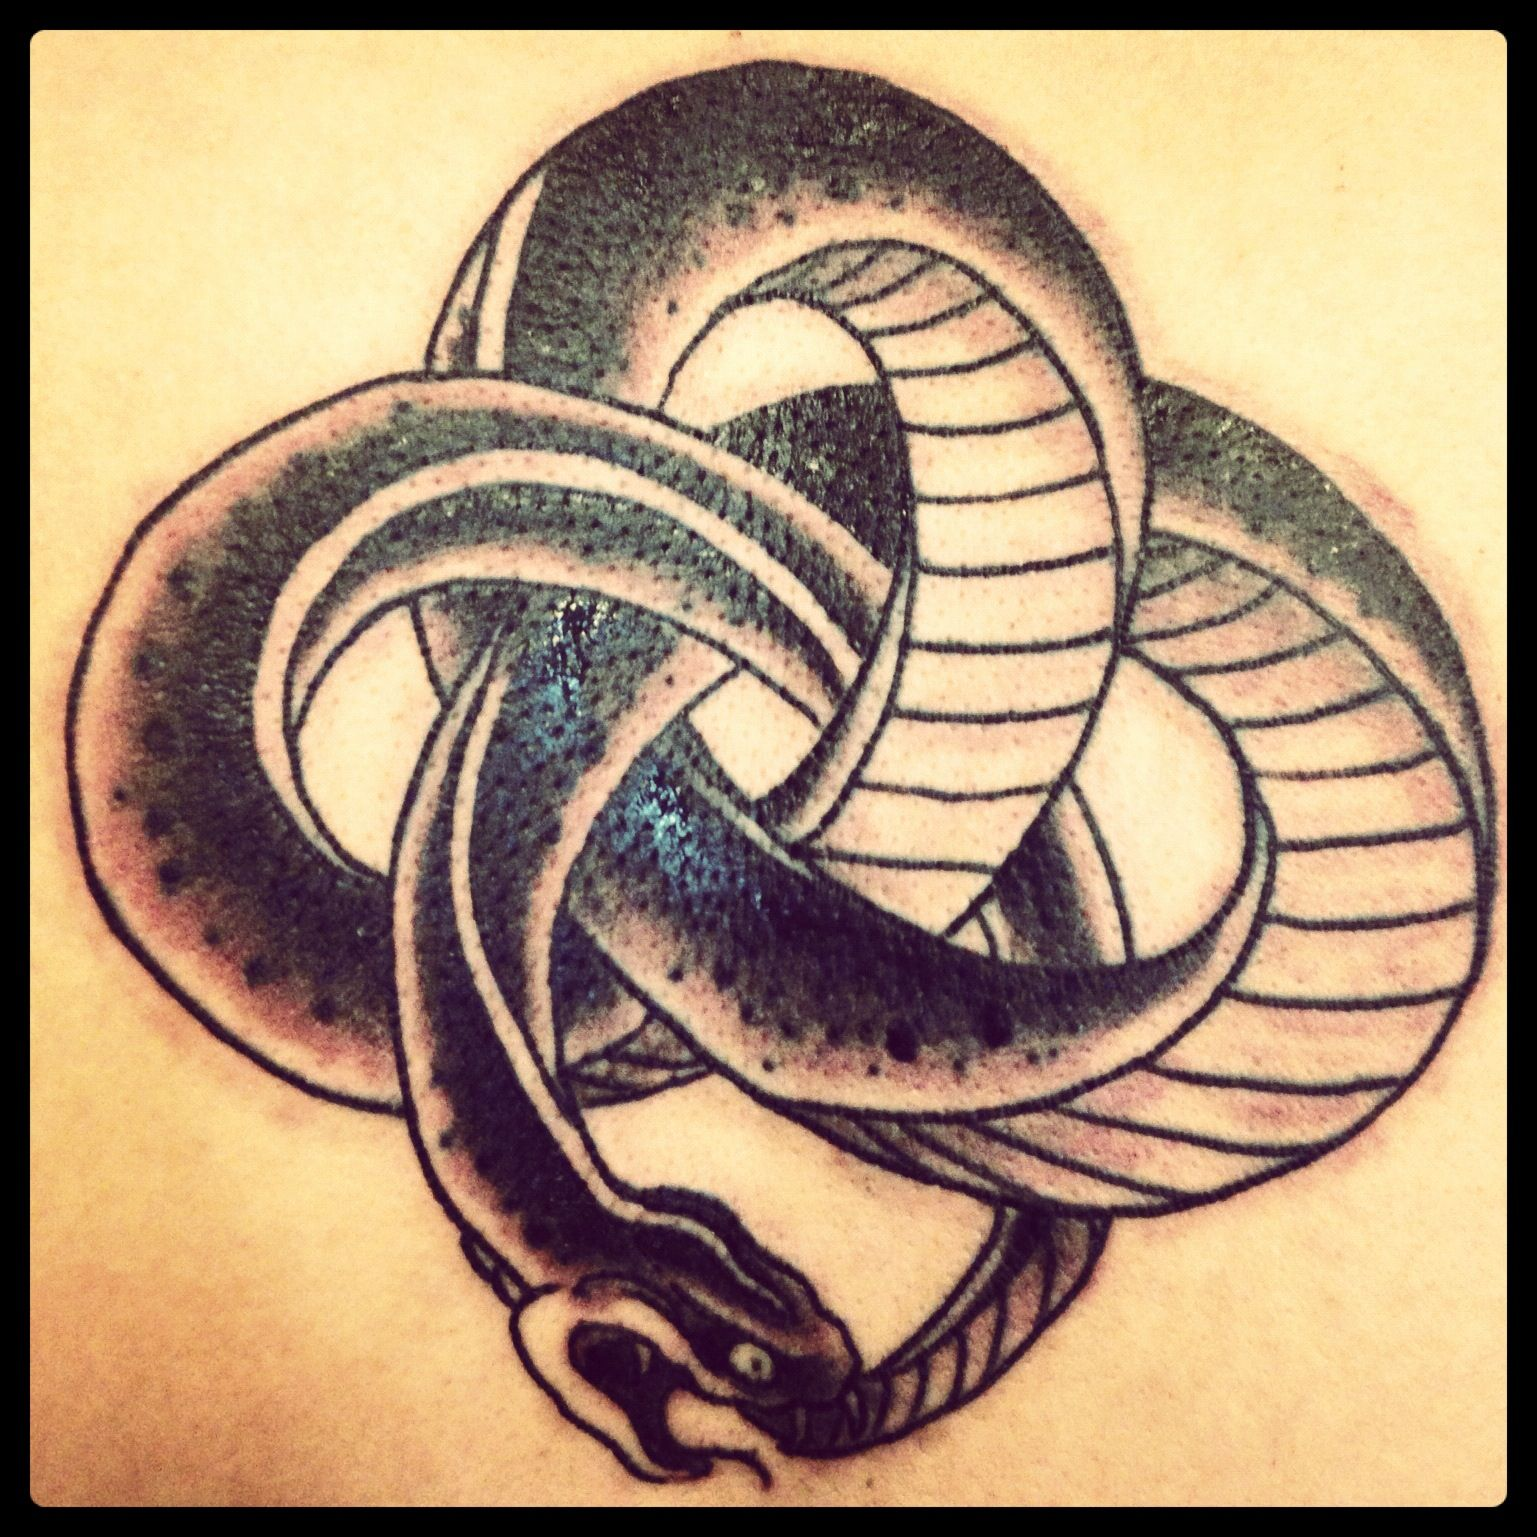 Snake ouroboros tattoo tattoos pinterest ouroboros for Snake eating itself tattoo